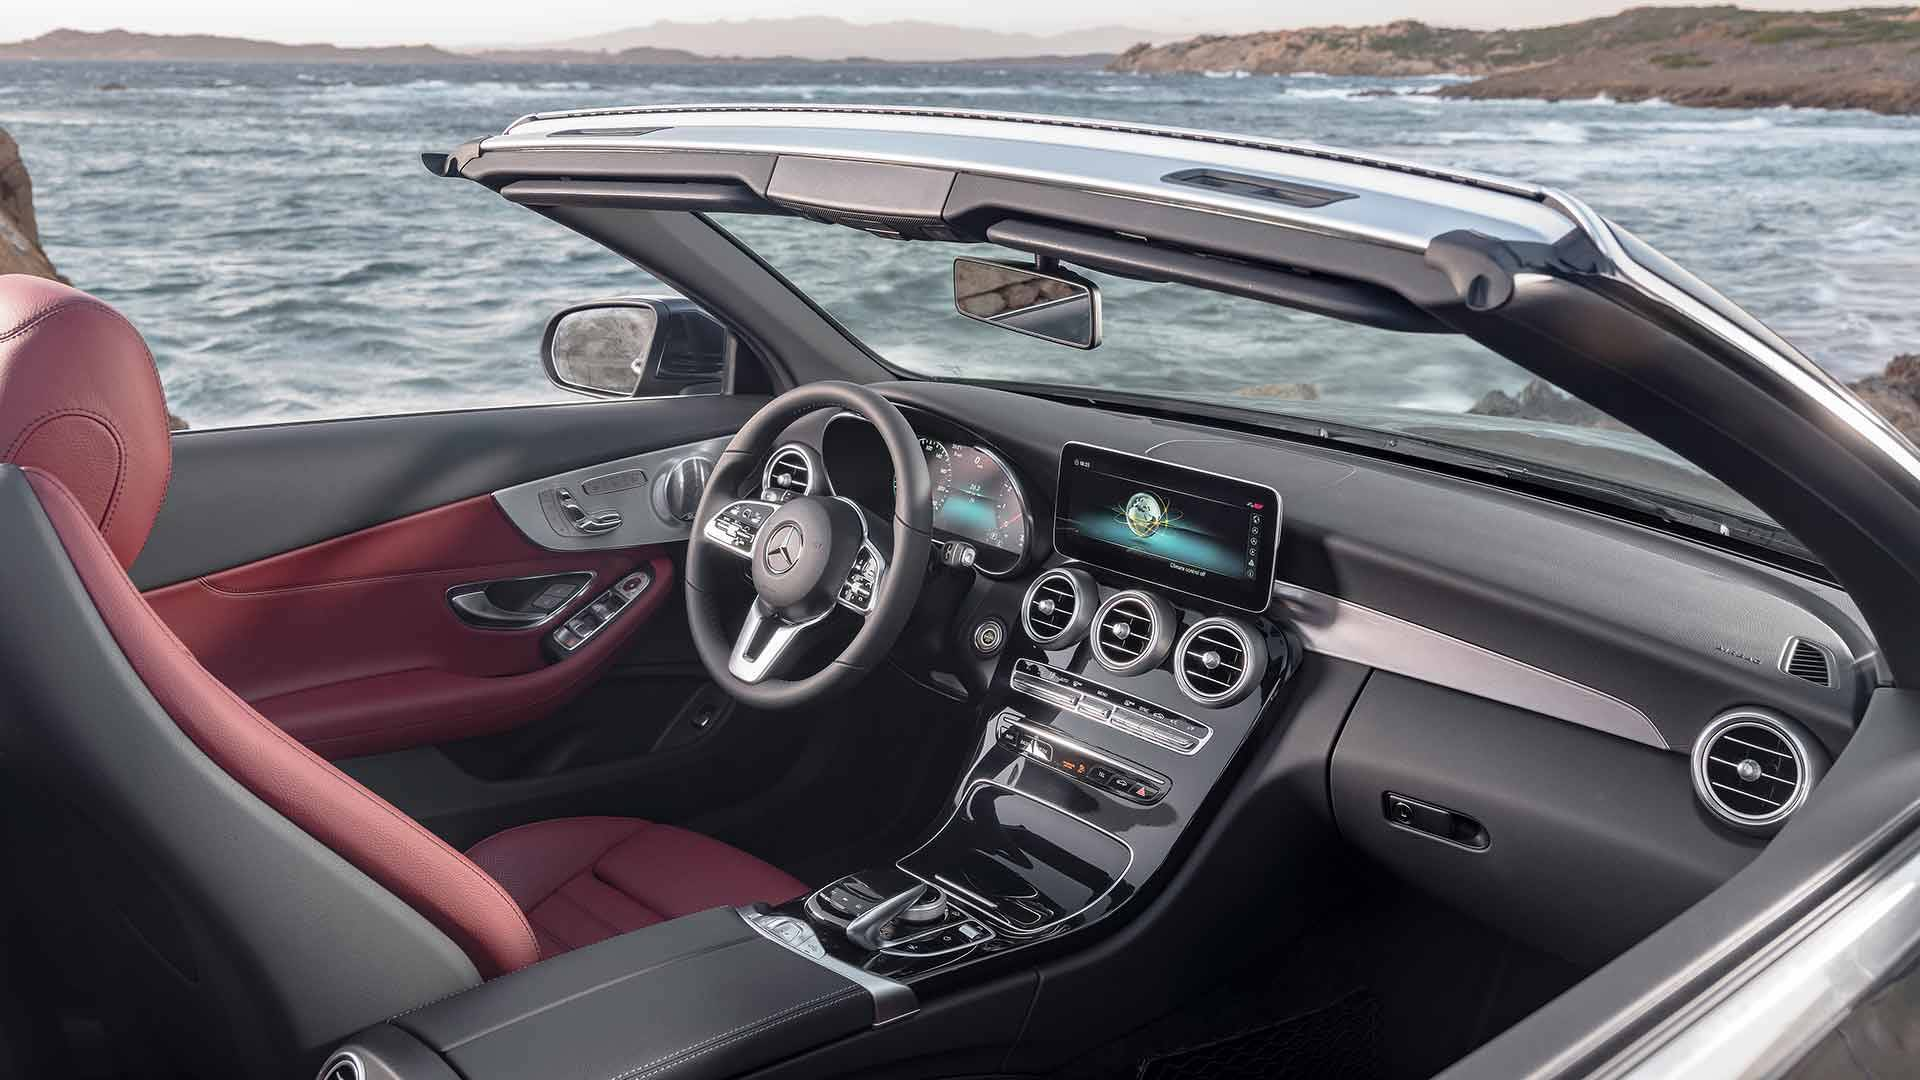 Facelifted 2019 Mercedes-Benz C-class     - VWVortex com